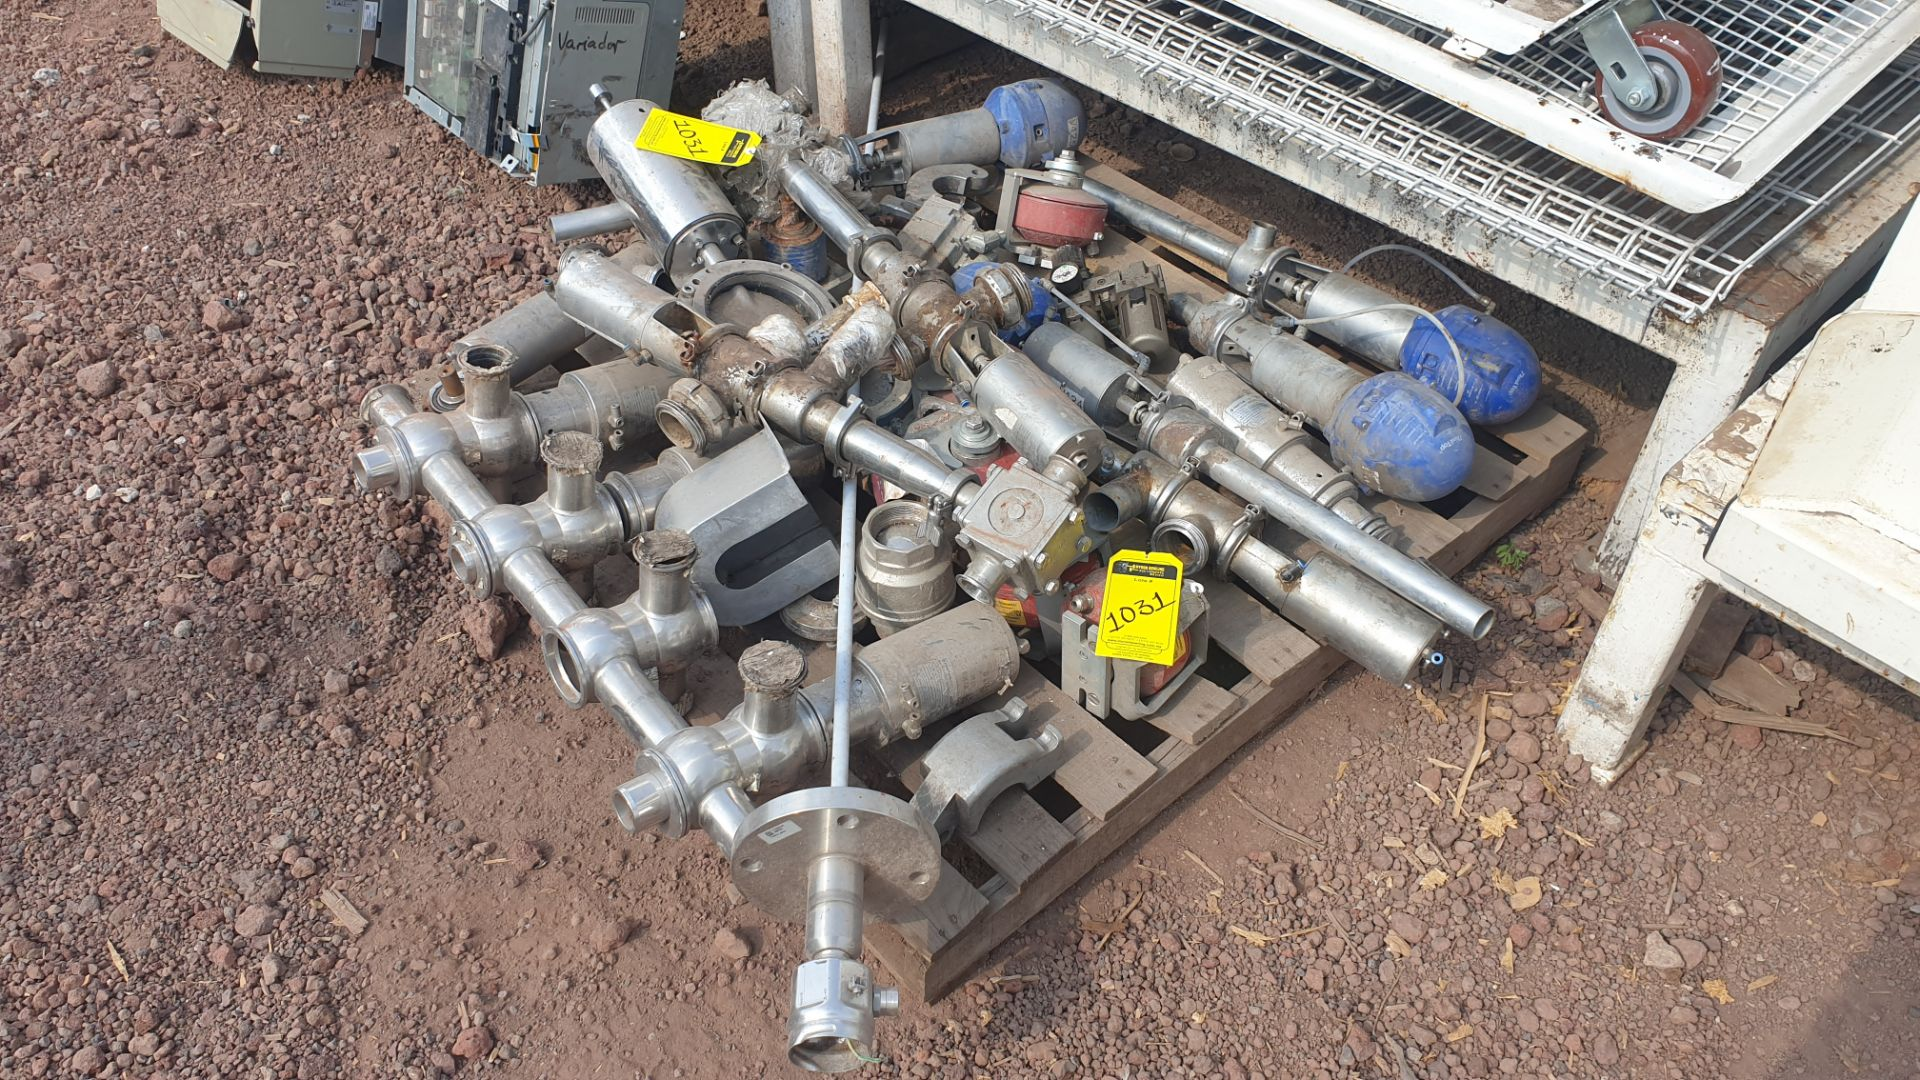 Lot of spare parts, valves, volumetric scales. Please inspect - Image 7 of 8